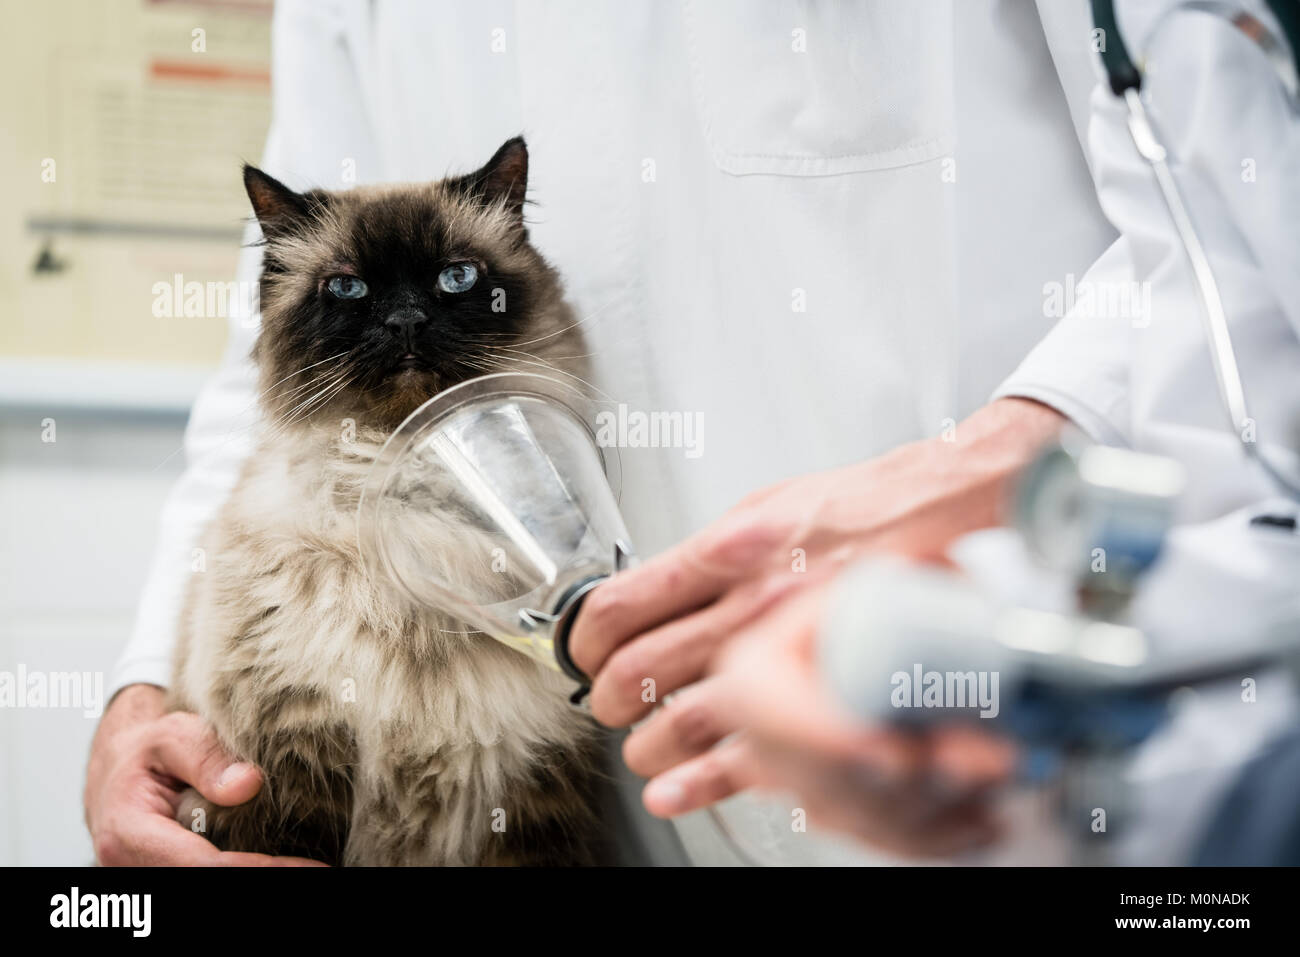 Vet checking cat for symptoms of disease in veterinarian clinic  - Stock Image